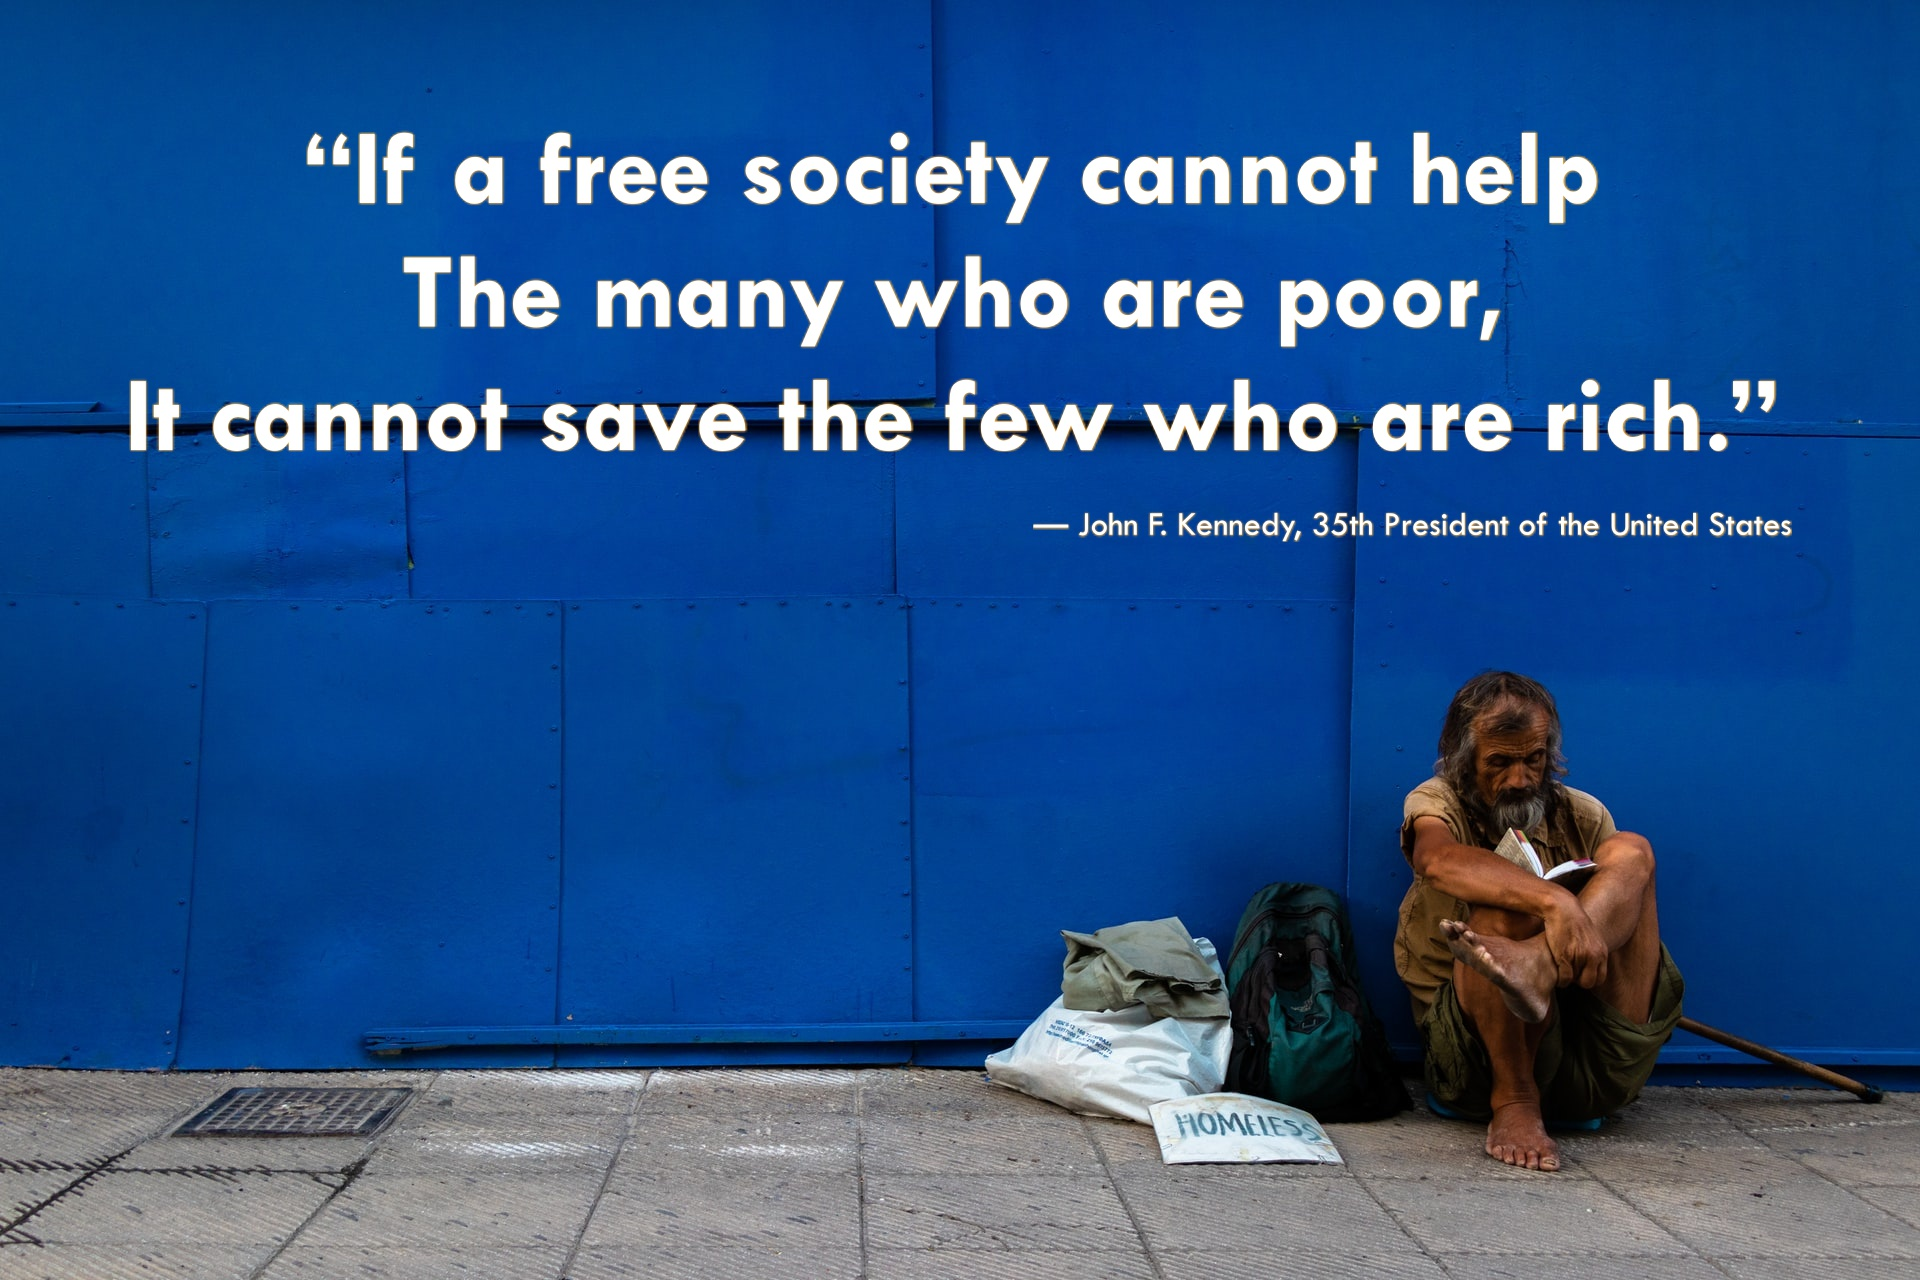 """""""If a free society cannot help the many who are poor, it cannot save the few who are rich."""" — John F. Kennedy, 35th President of the United States"""